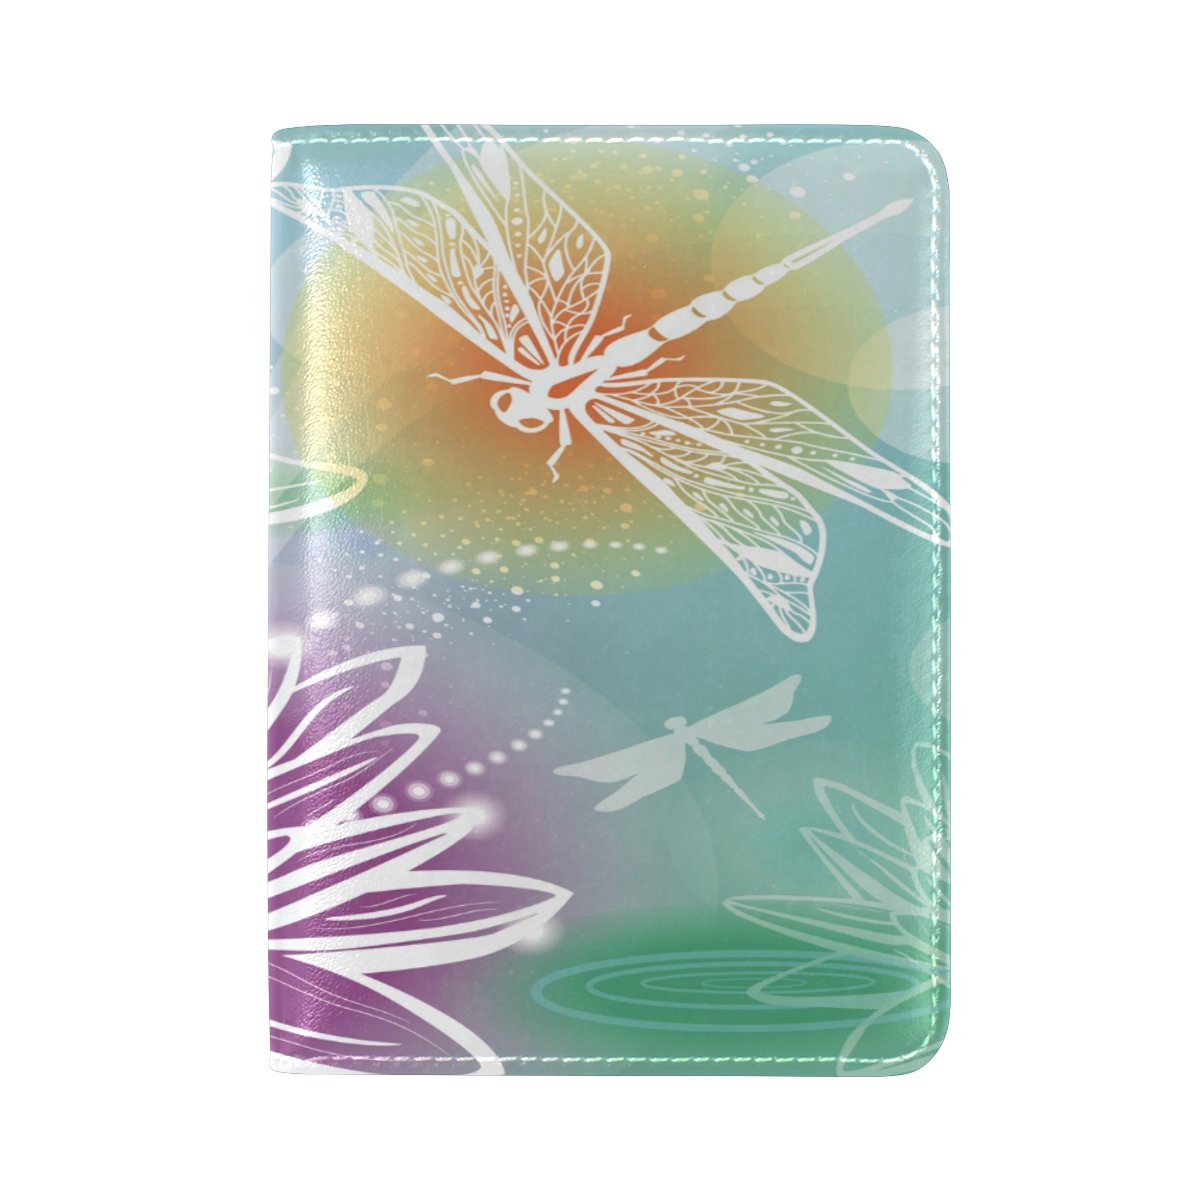 Art Dragonfly Genuine Real Leather USA Passport Holder Cover Travel Case